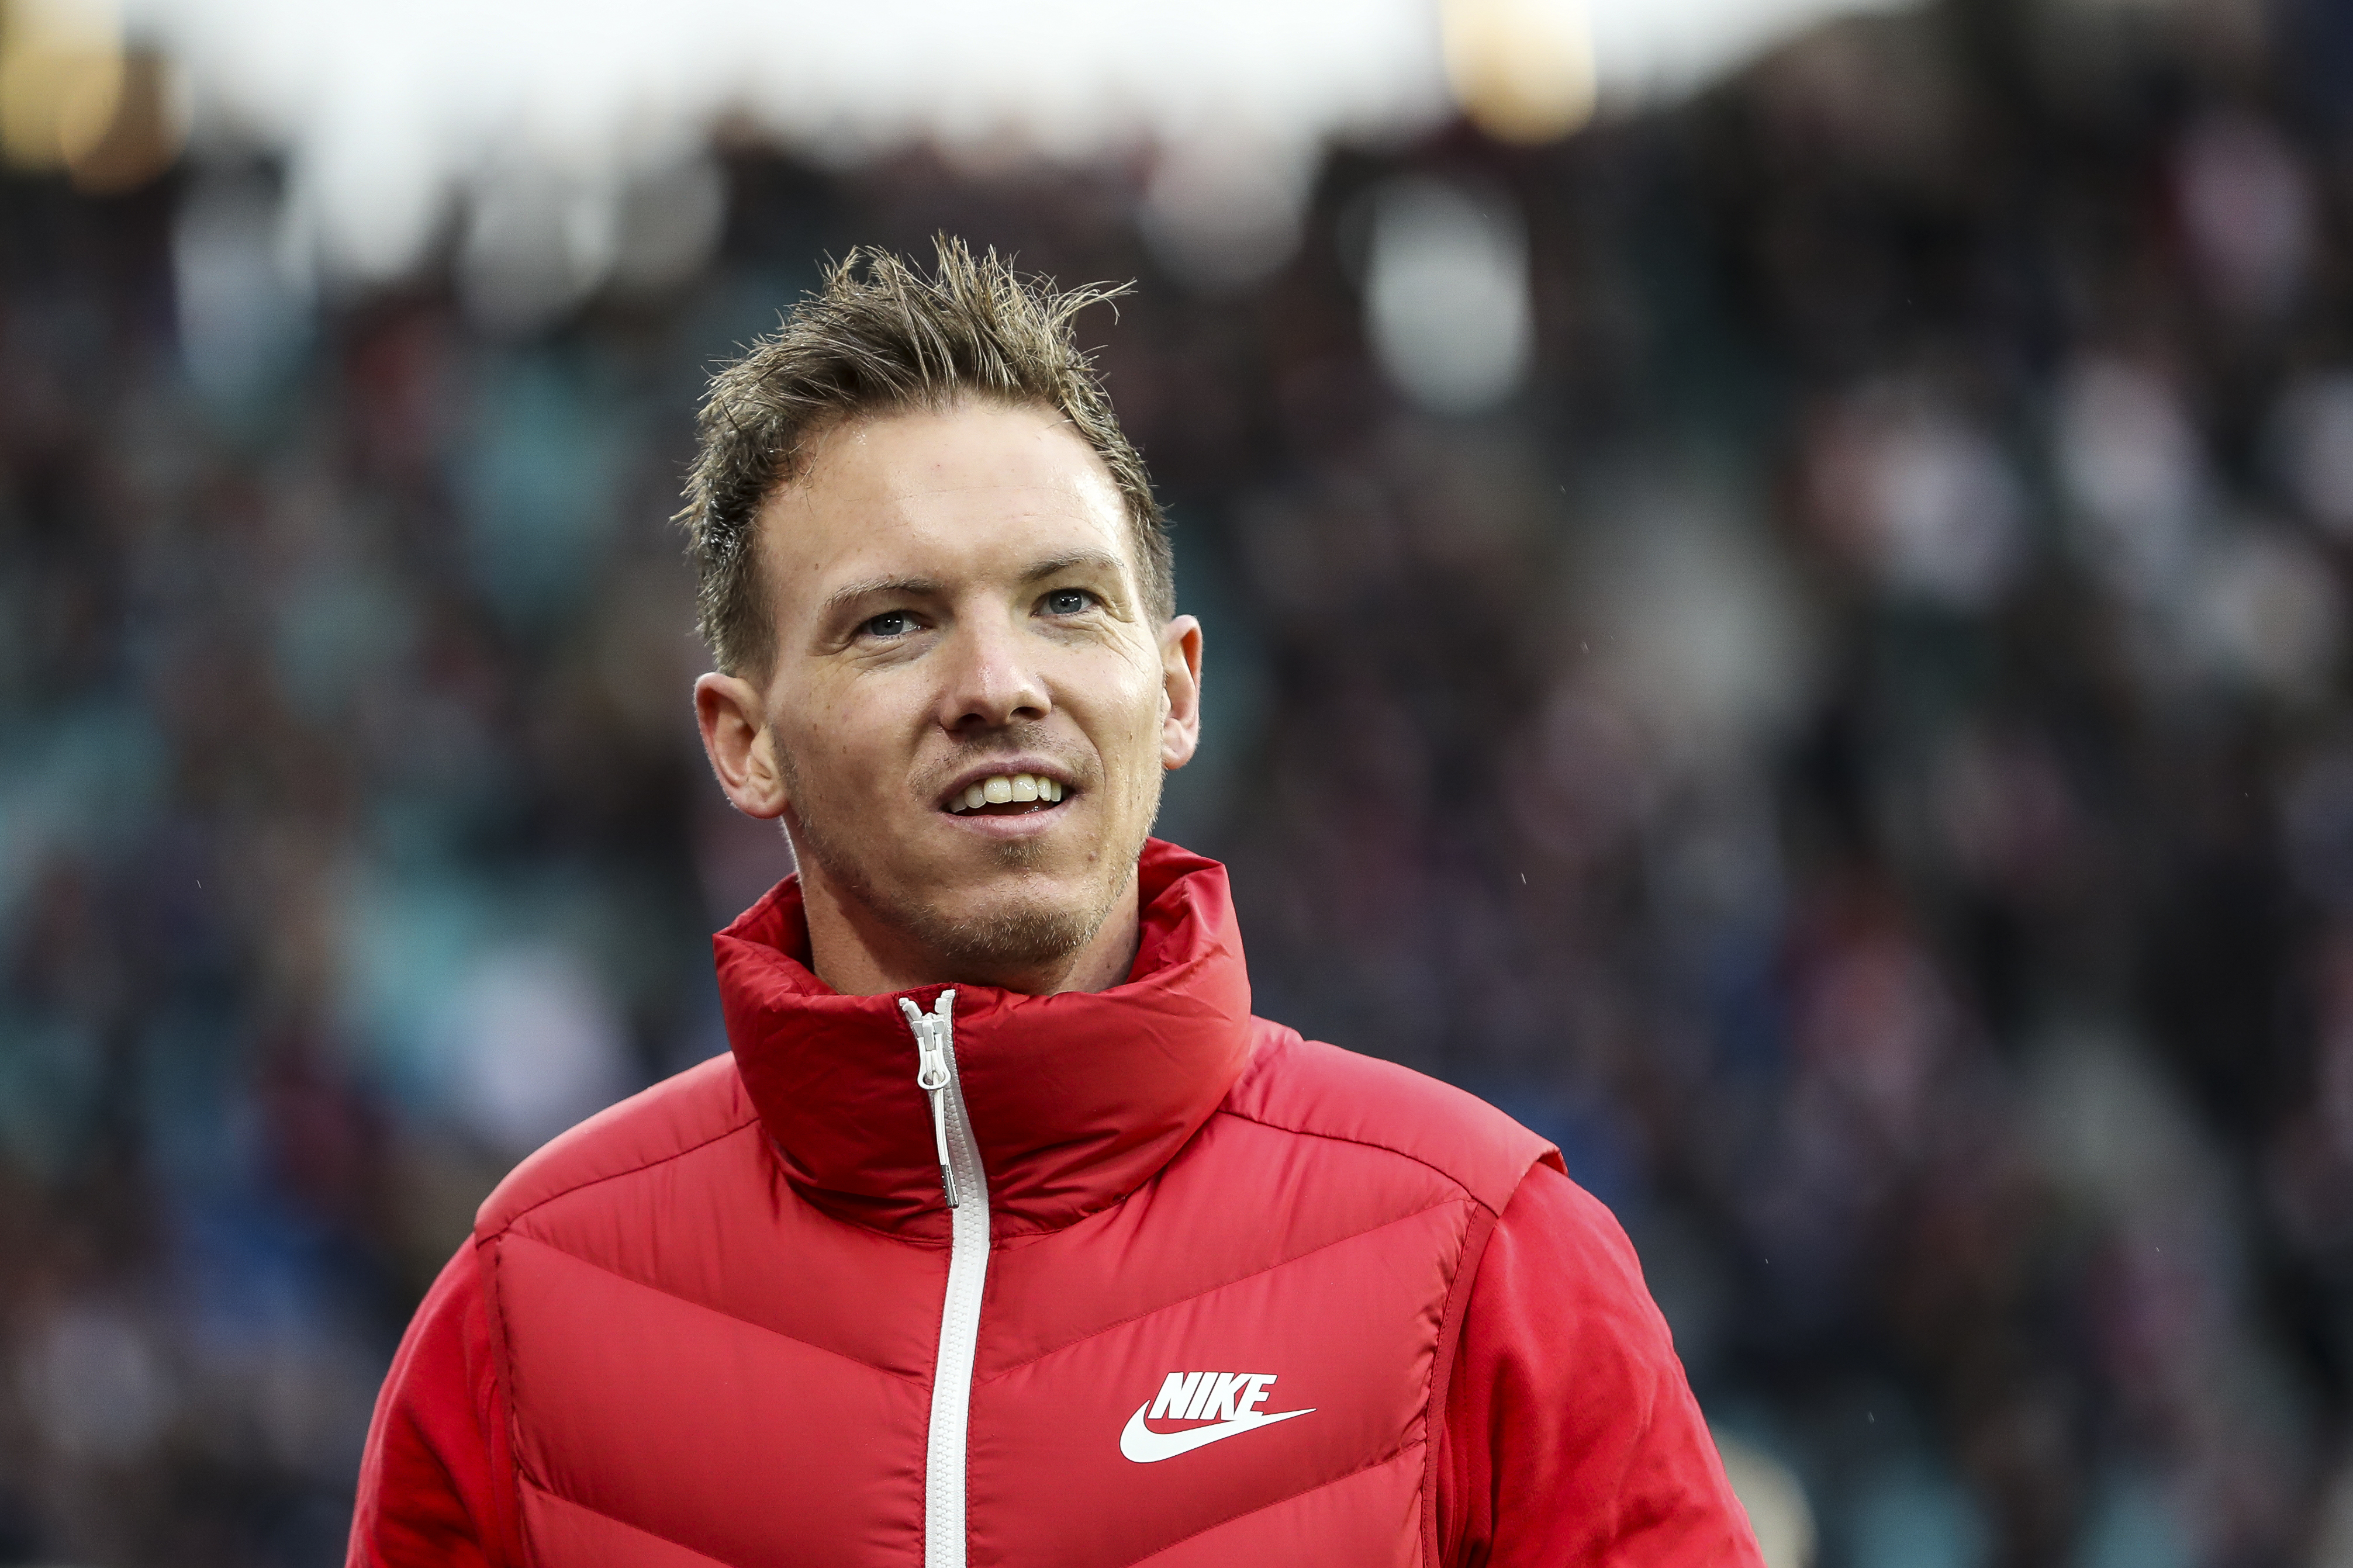 Julian Nagelsmann is regarded as one of the brightest young managers in Europe (Photo by Maja Hitij/Bongarts/Getty Images)